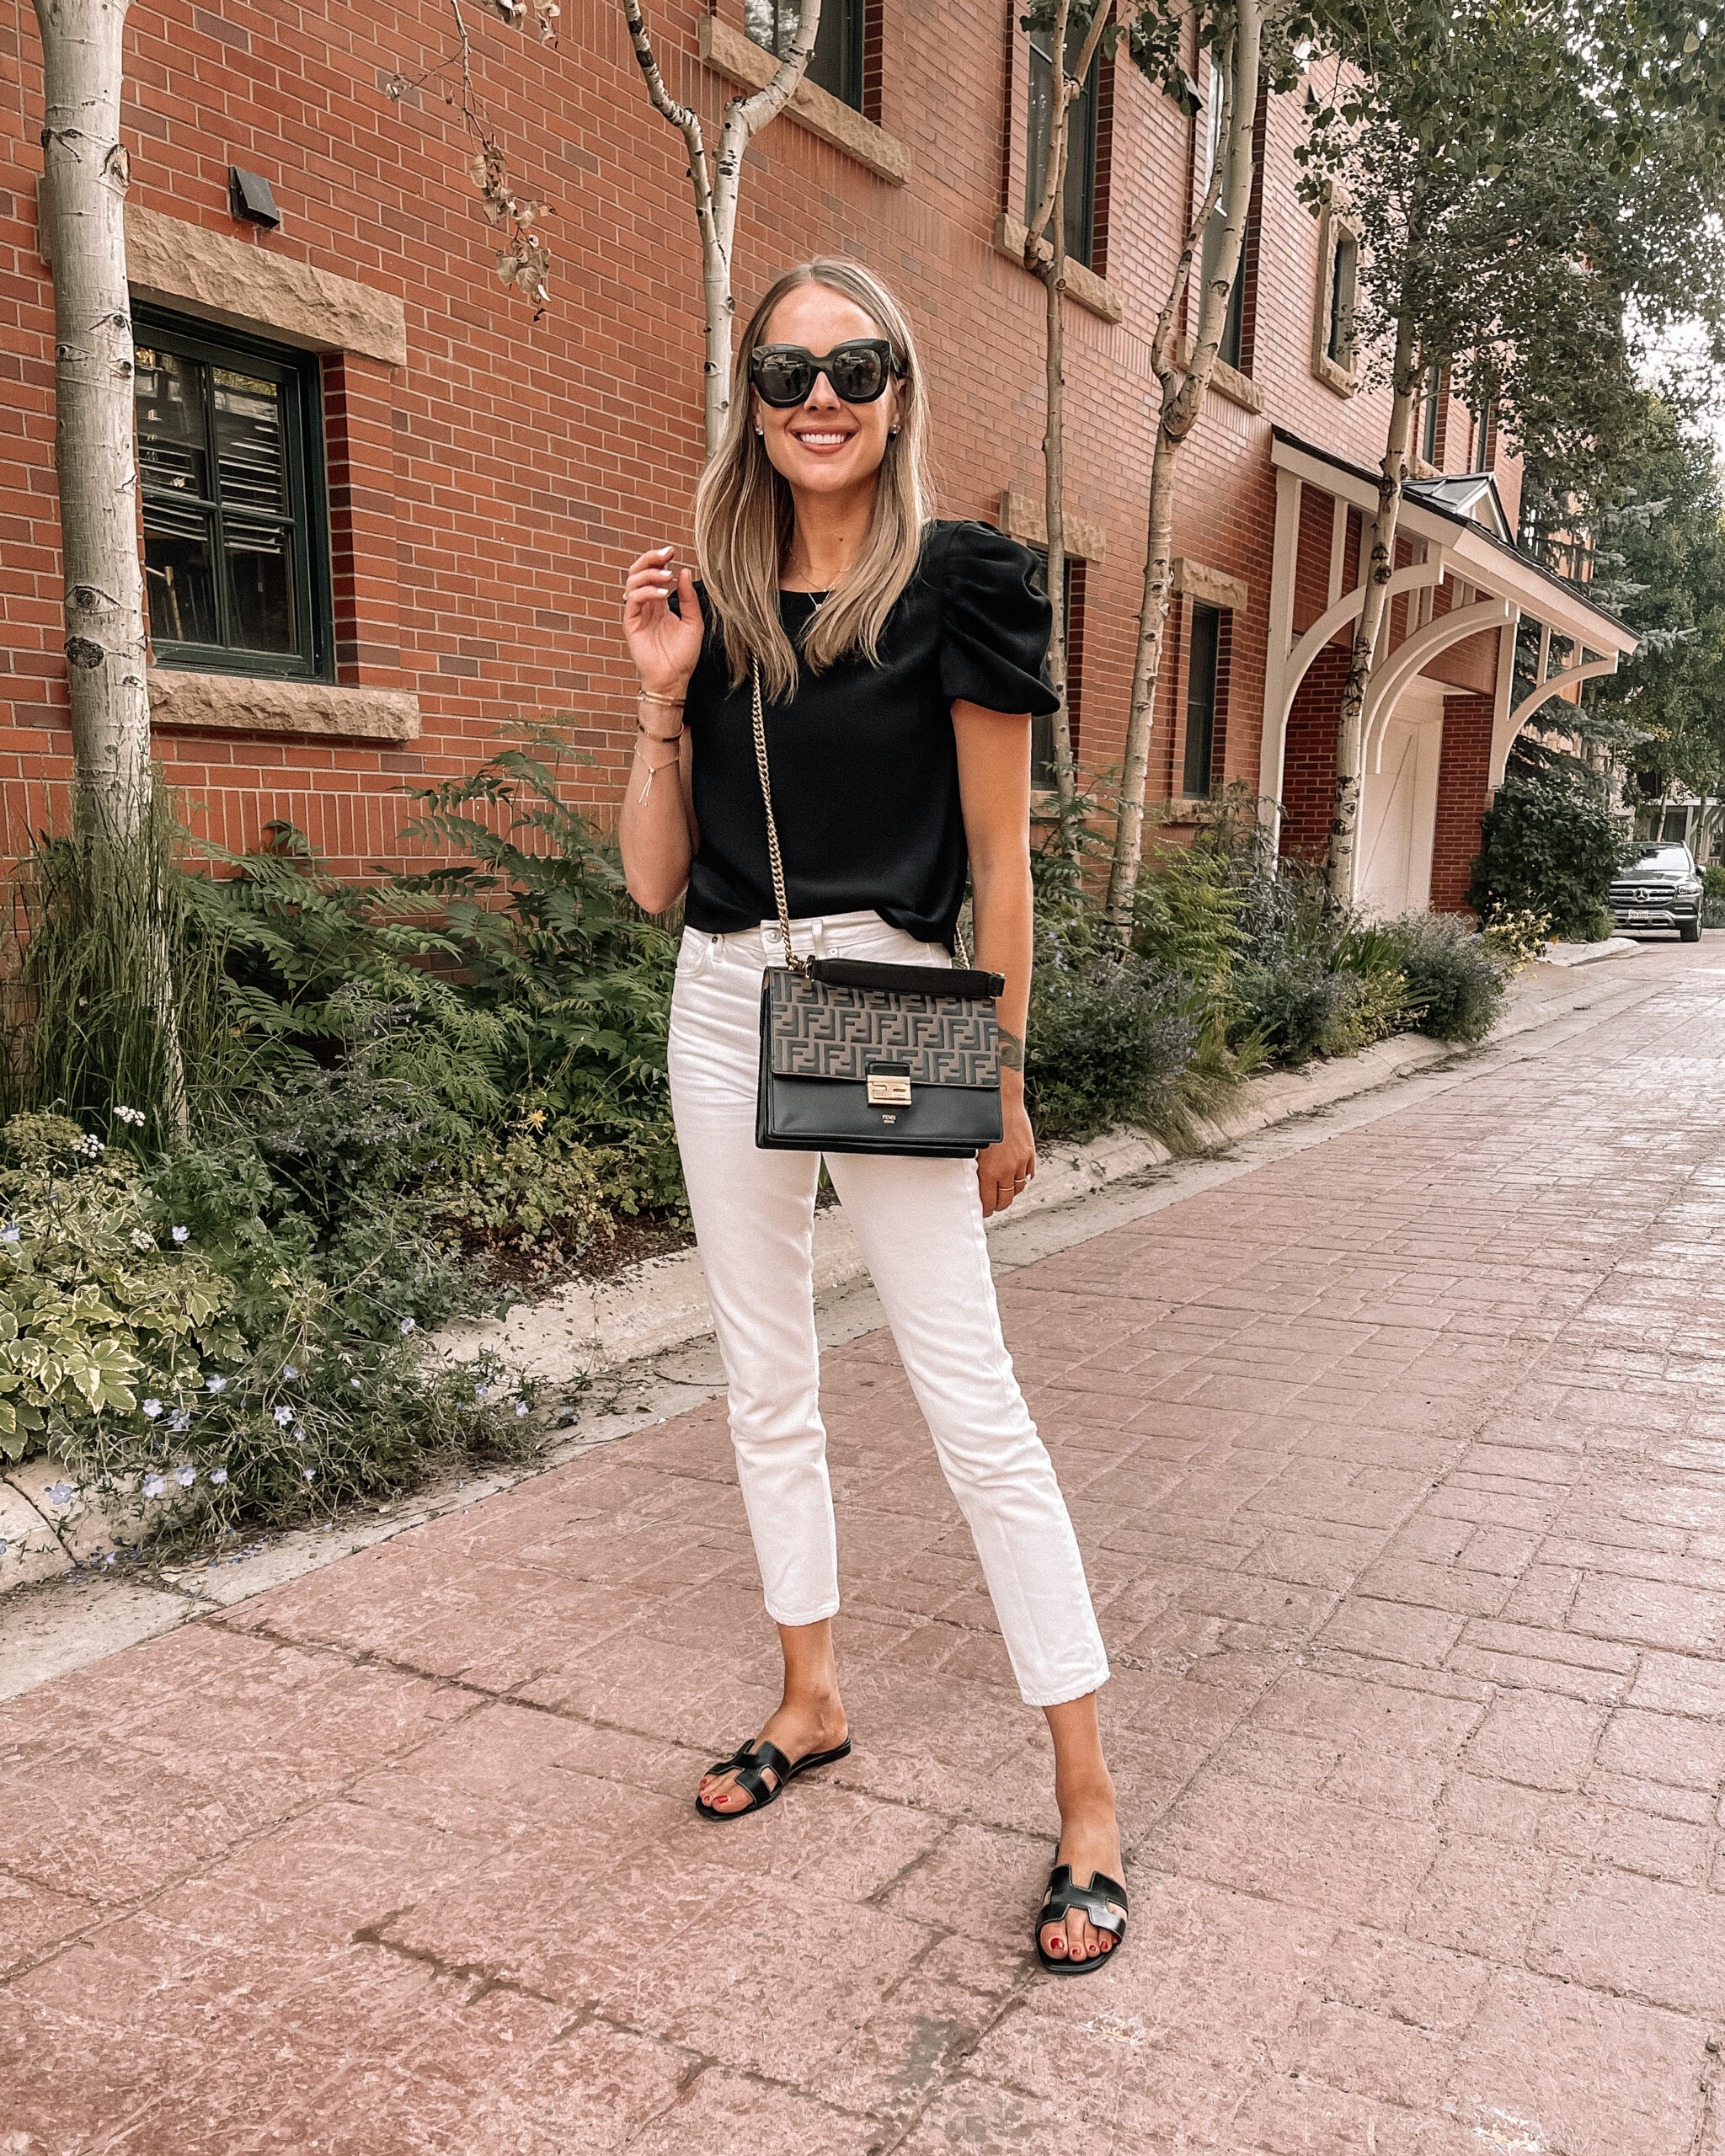 Fashion Jackson Wearing Amanda Uprichard Black Puff Sleeve Top Citizens of Humanity White Jeans Hermes Oran Black Sandals Telluride Summer Outfit